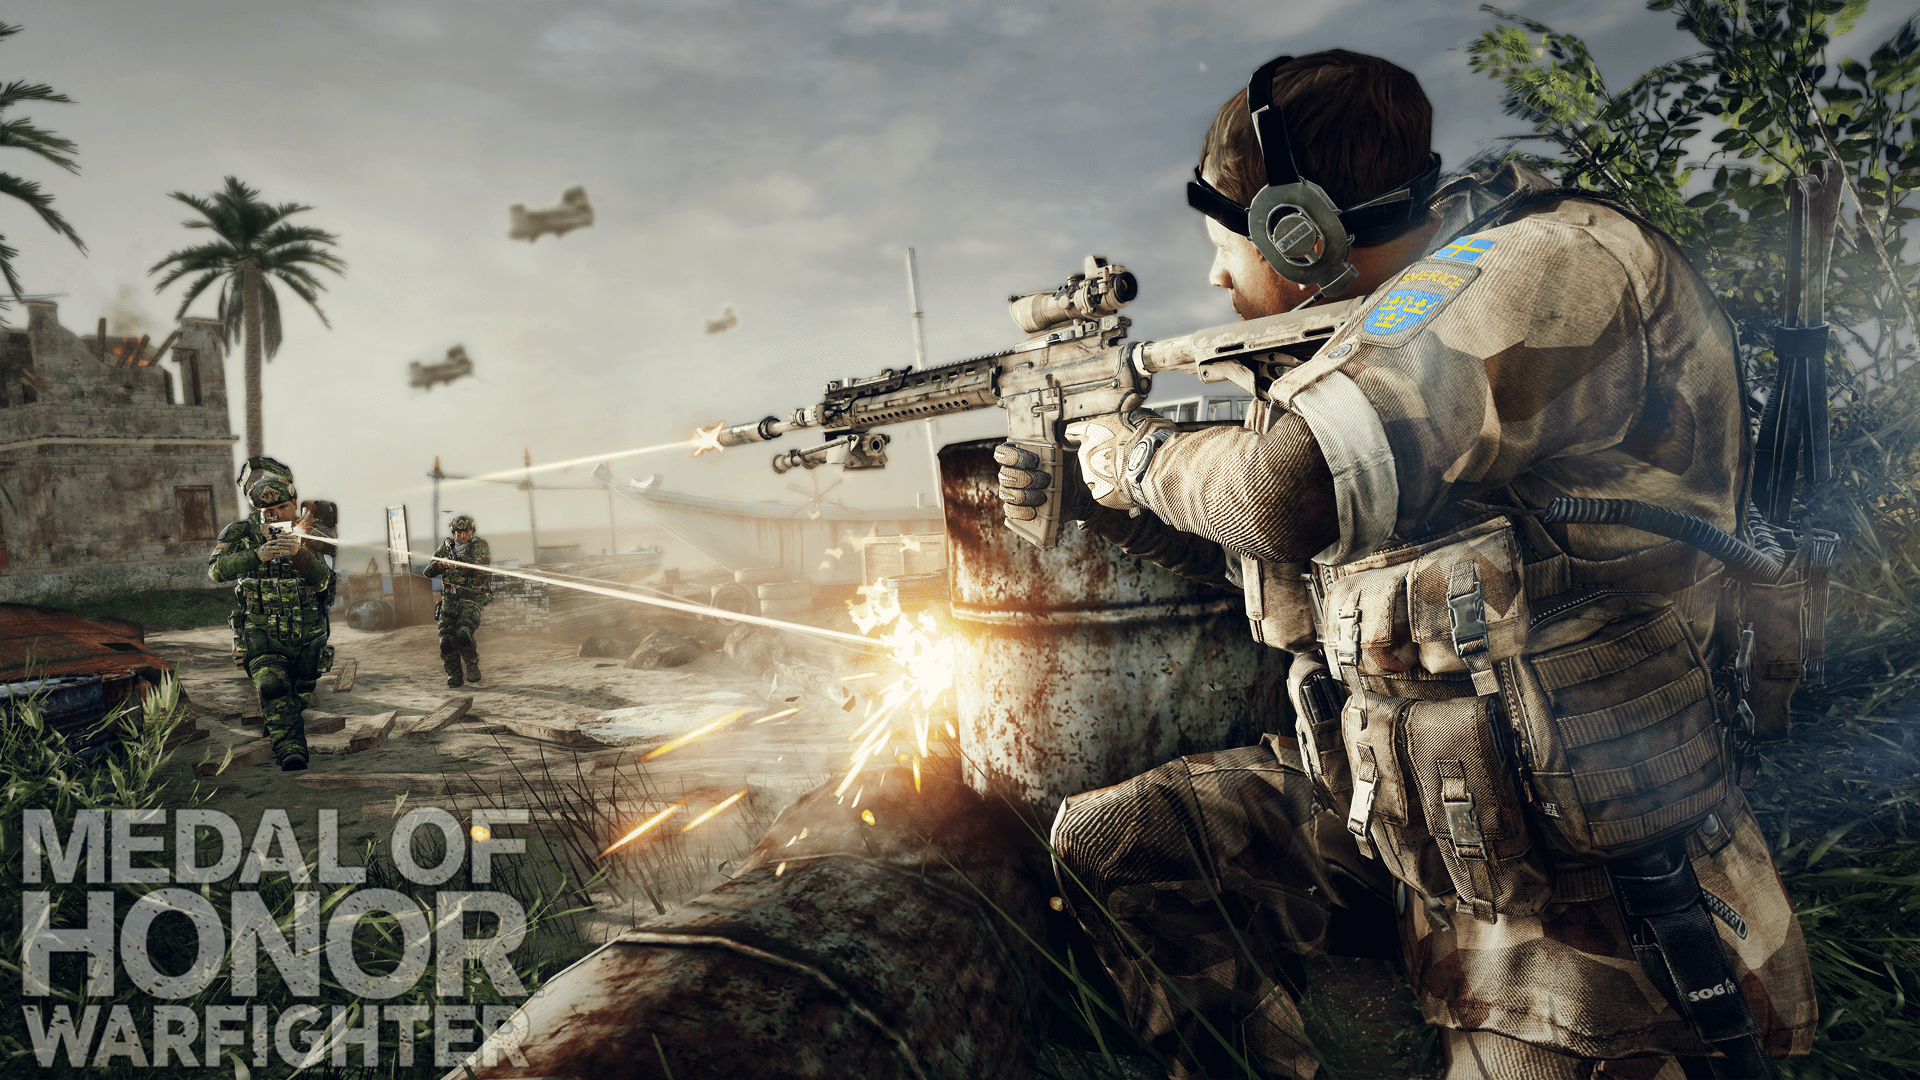 Medal of Honor Warfighter iOS/APK Version Full Free Download